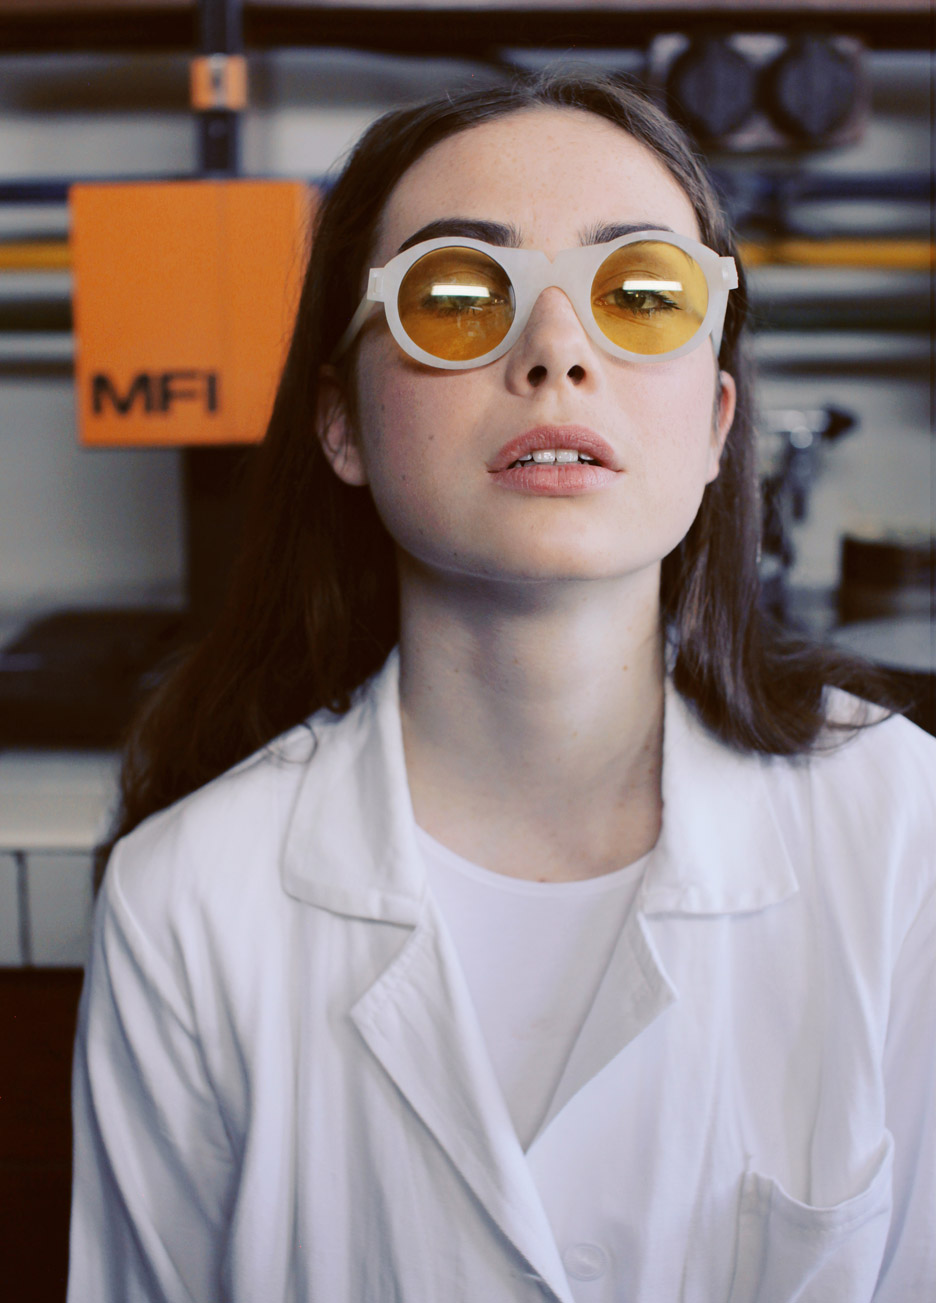 bioplastic-sunglasses-collection-1-crafting-plastics-milan-design-week-2016-fashion-anna-smoronova_dezeen_936_8